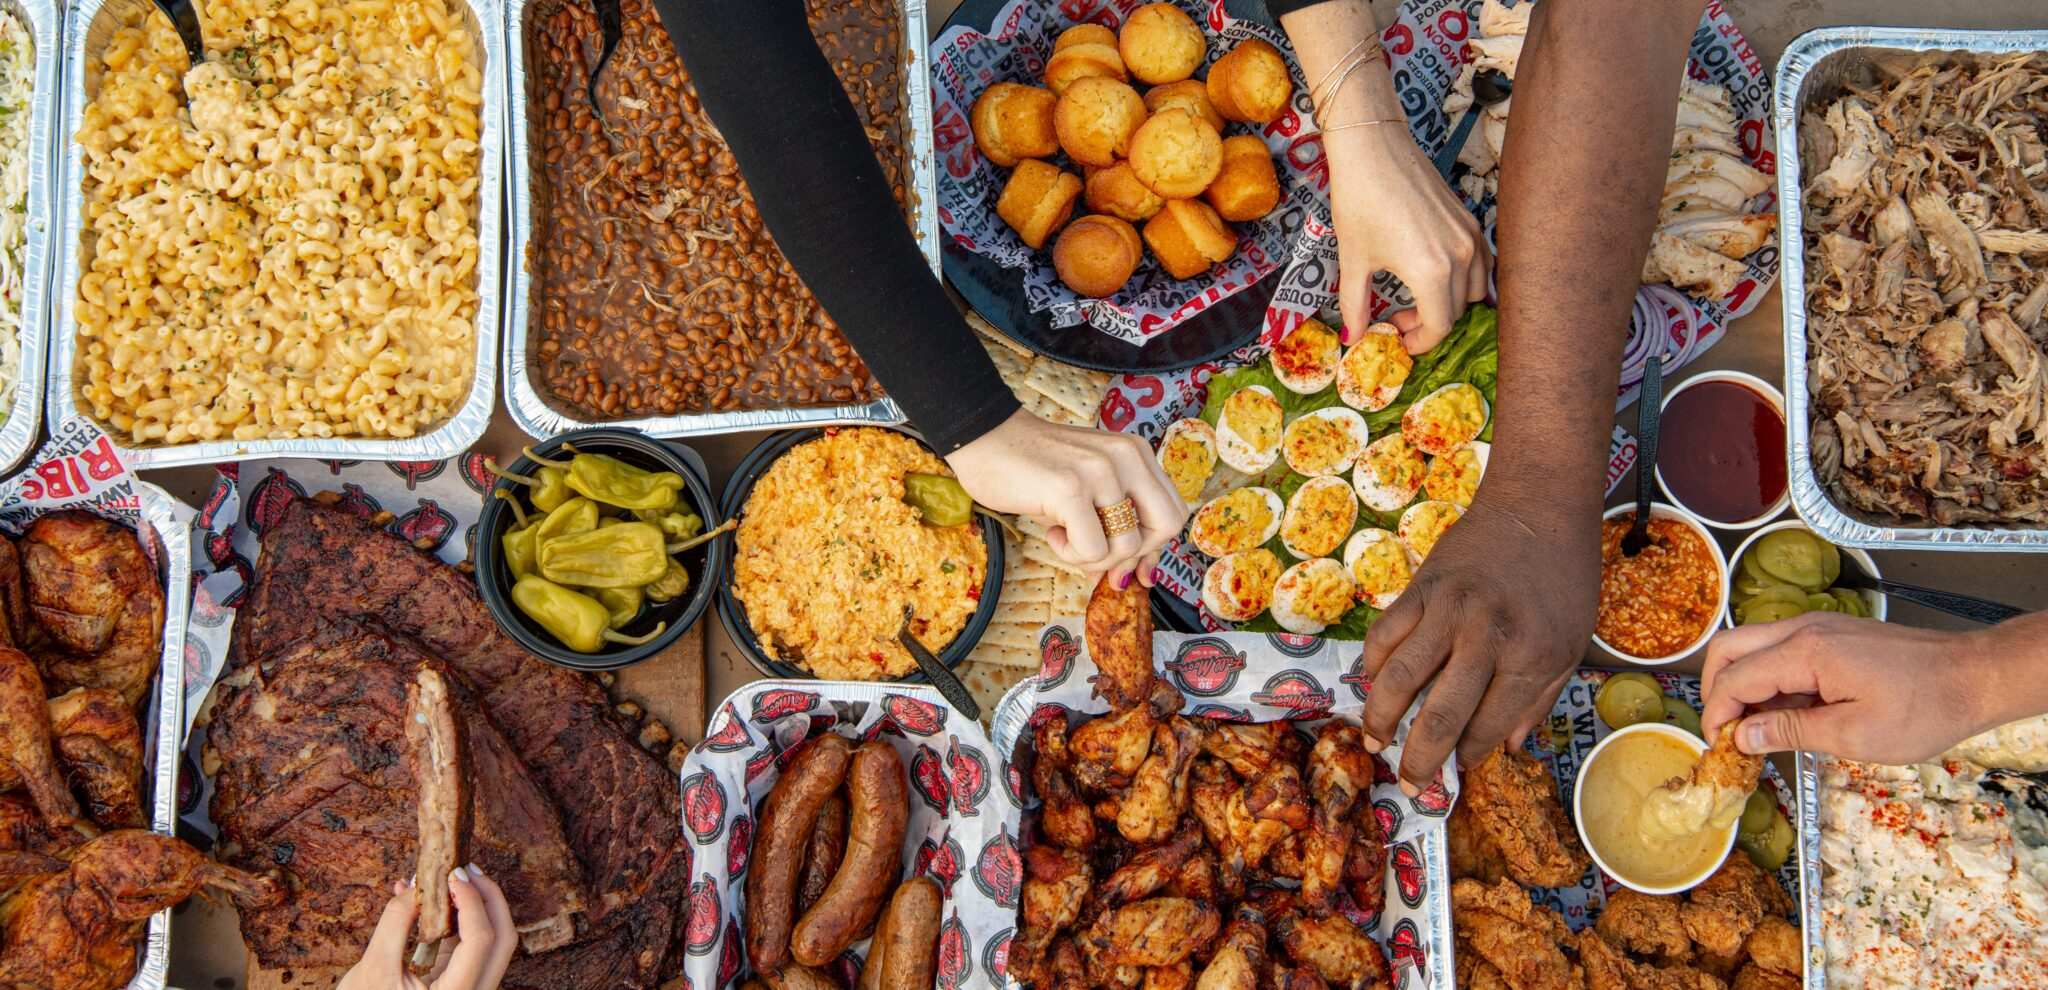 7 Birmingham-area restaurants where you can pick up BBQ on Labor Day